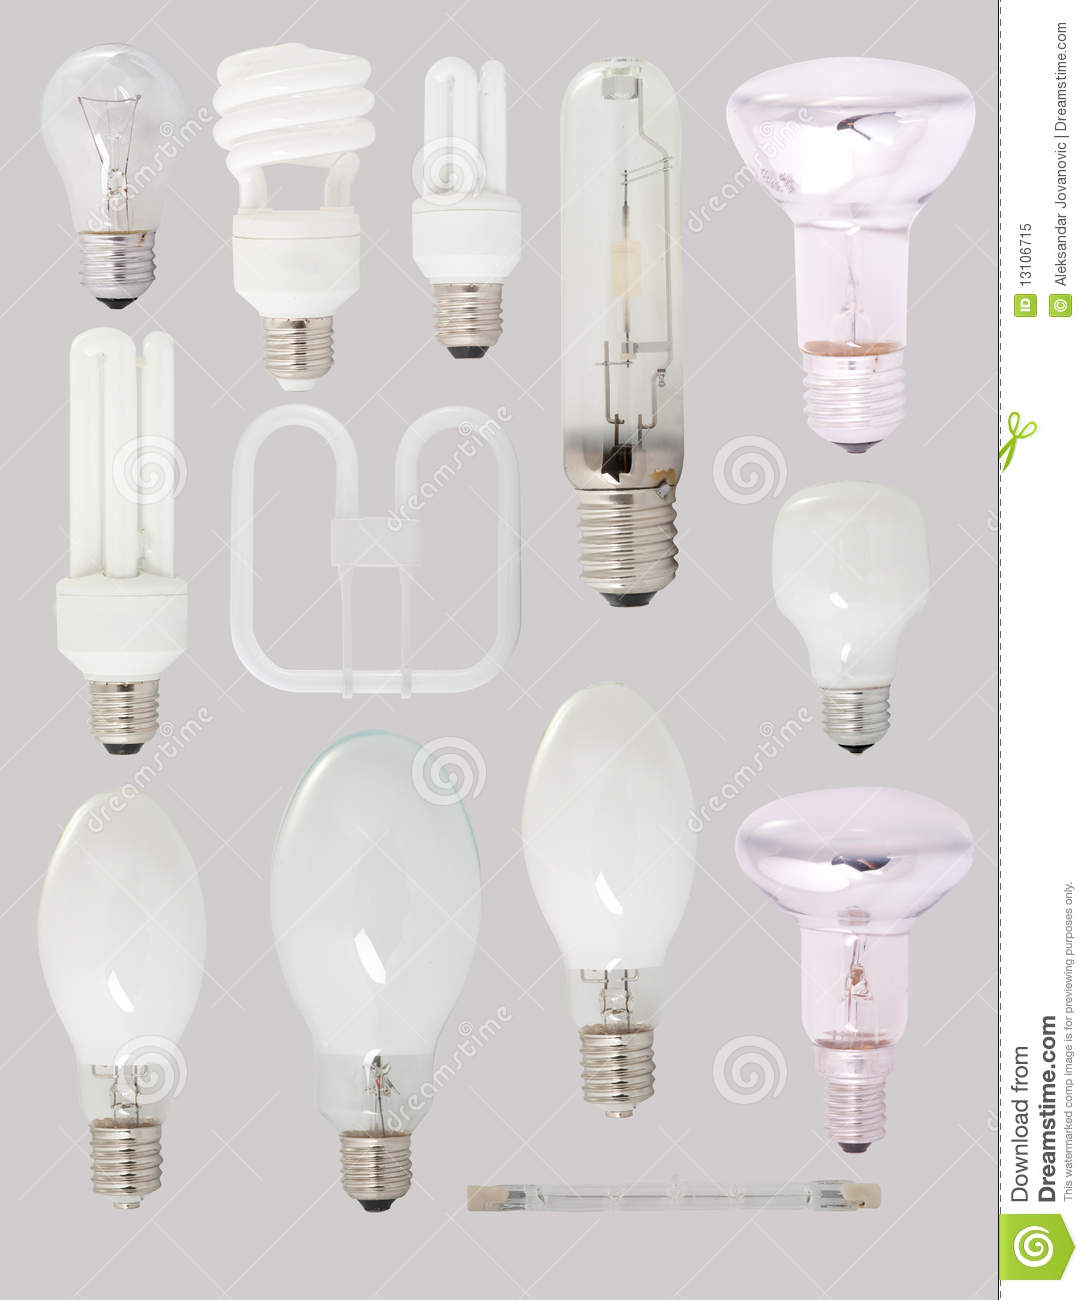 Different types of bulbs stock image image of light 13106715 different types of bulbs arubaitofo Images